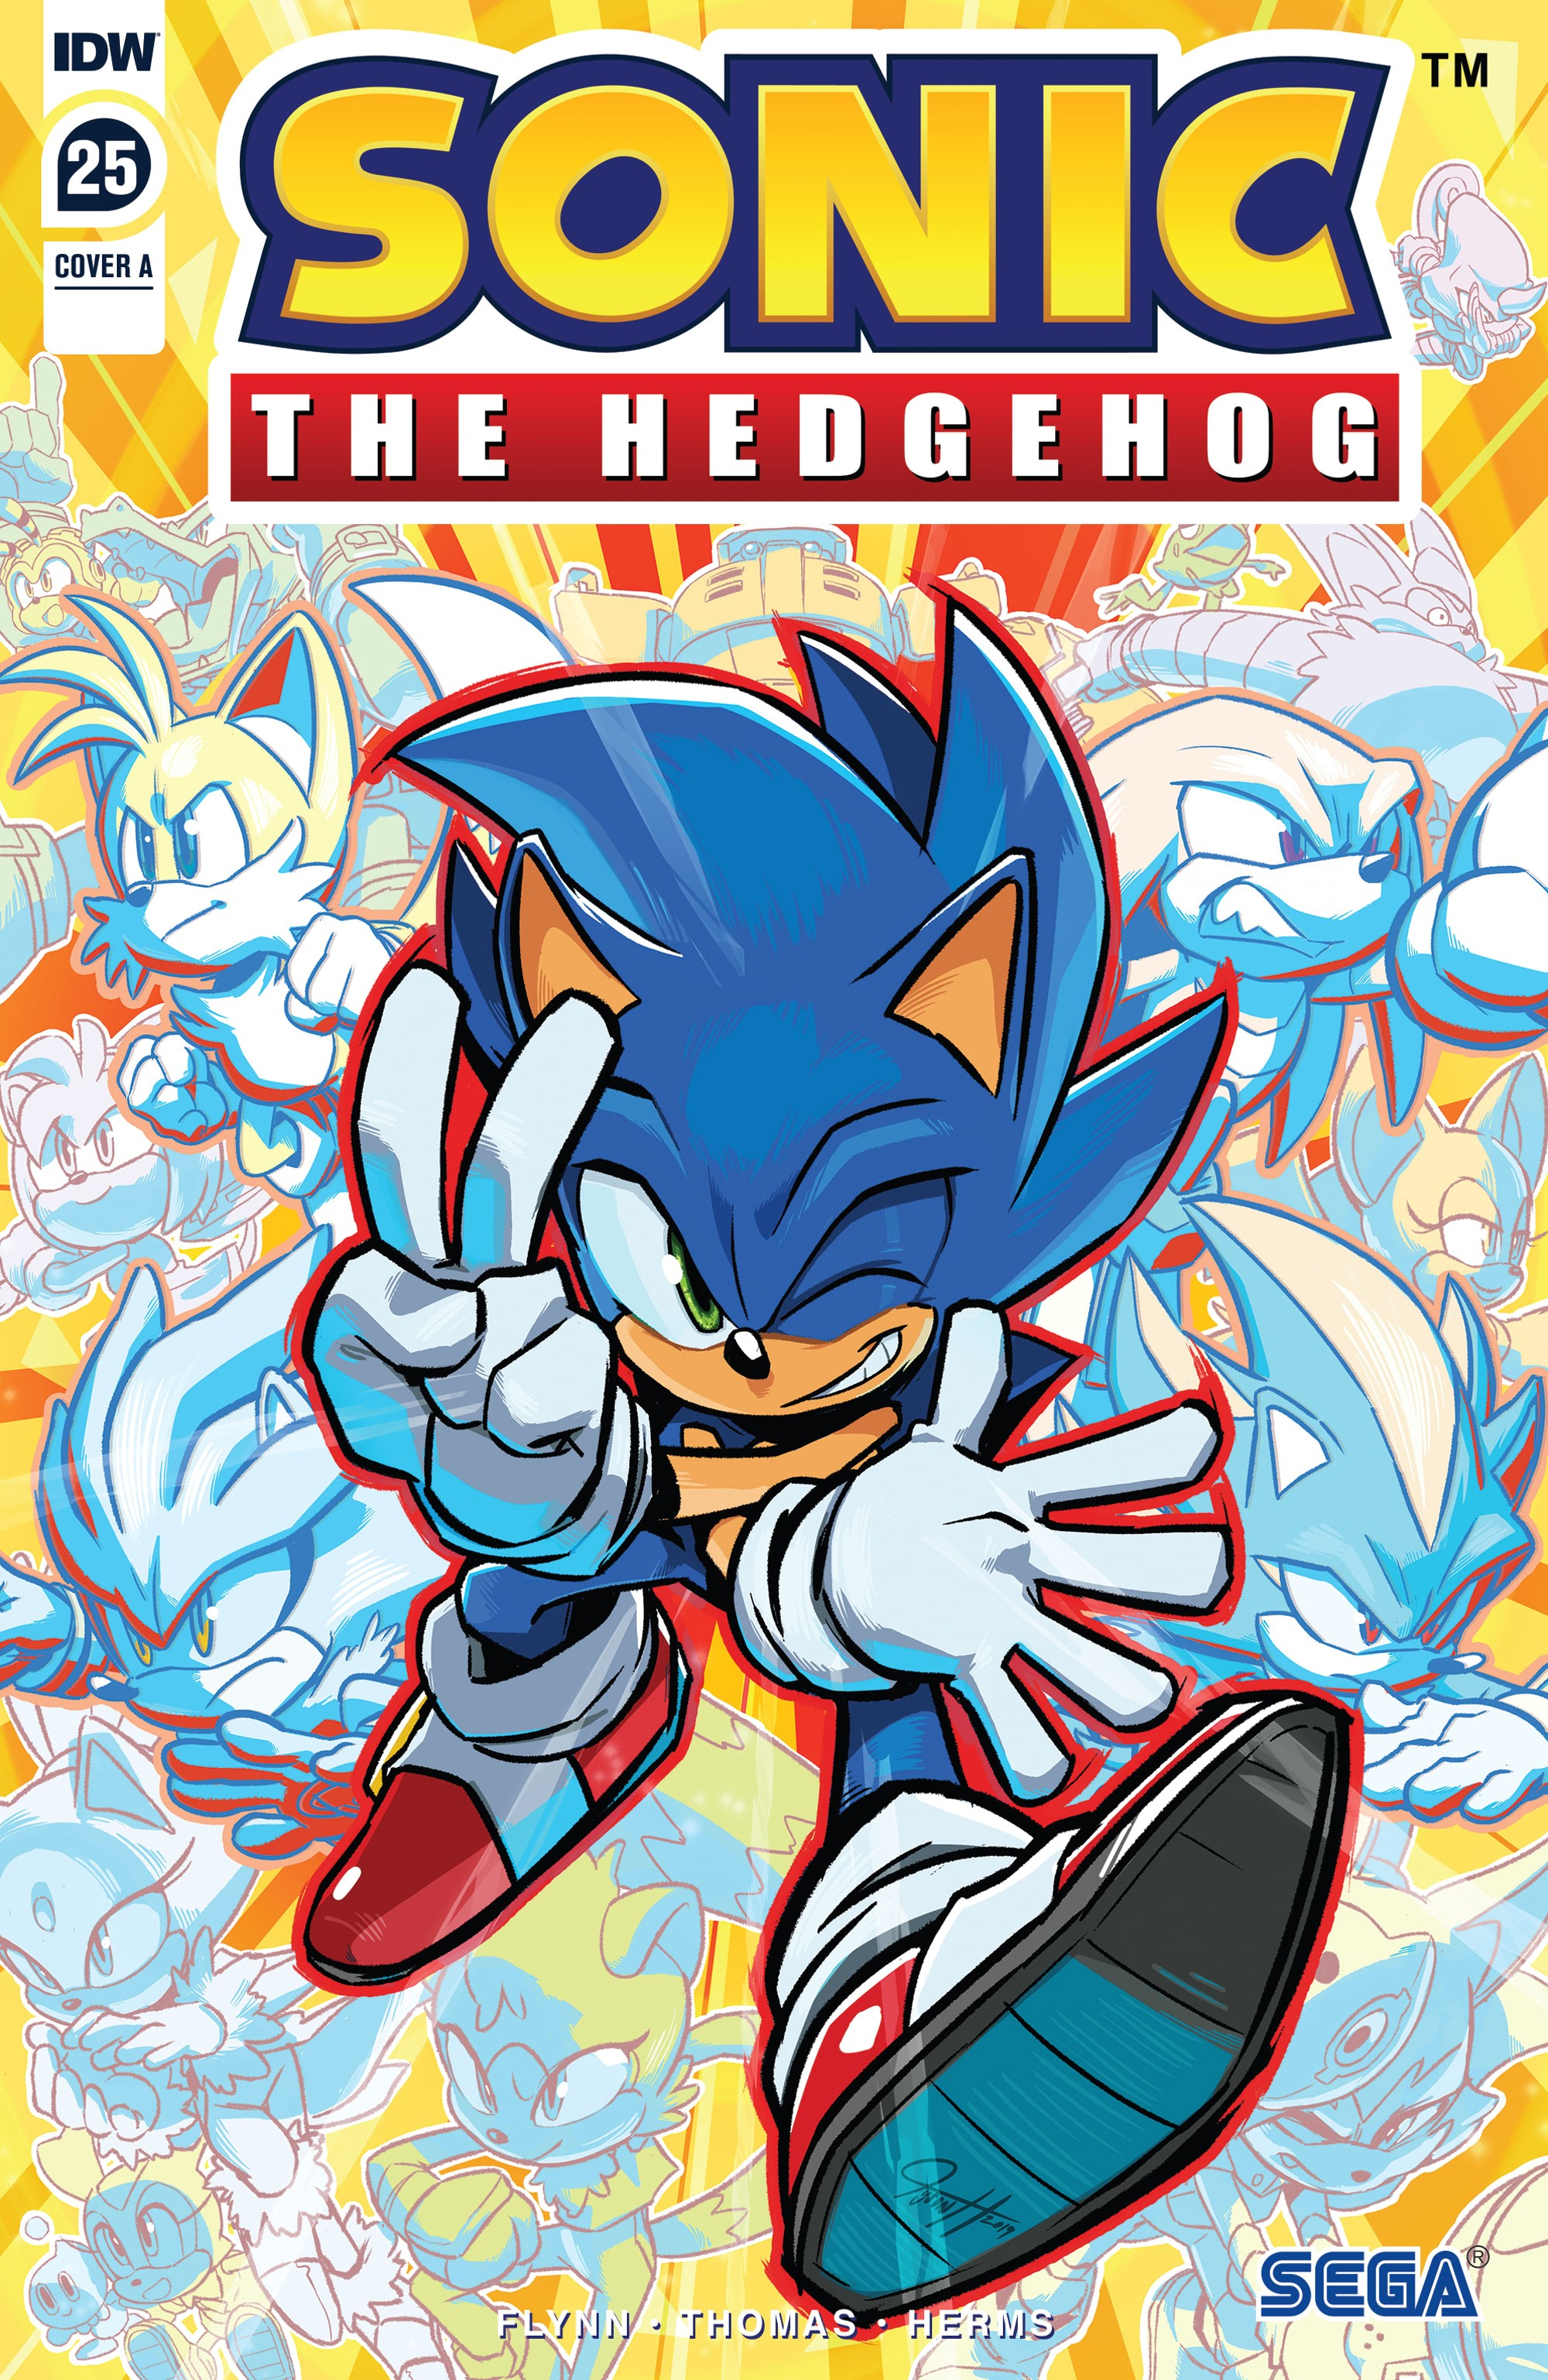 IDW Sonic the Hedgehog Issue 25